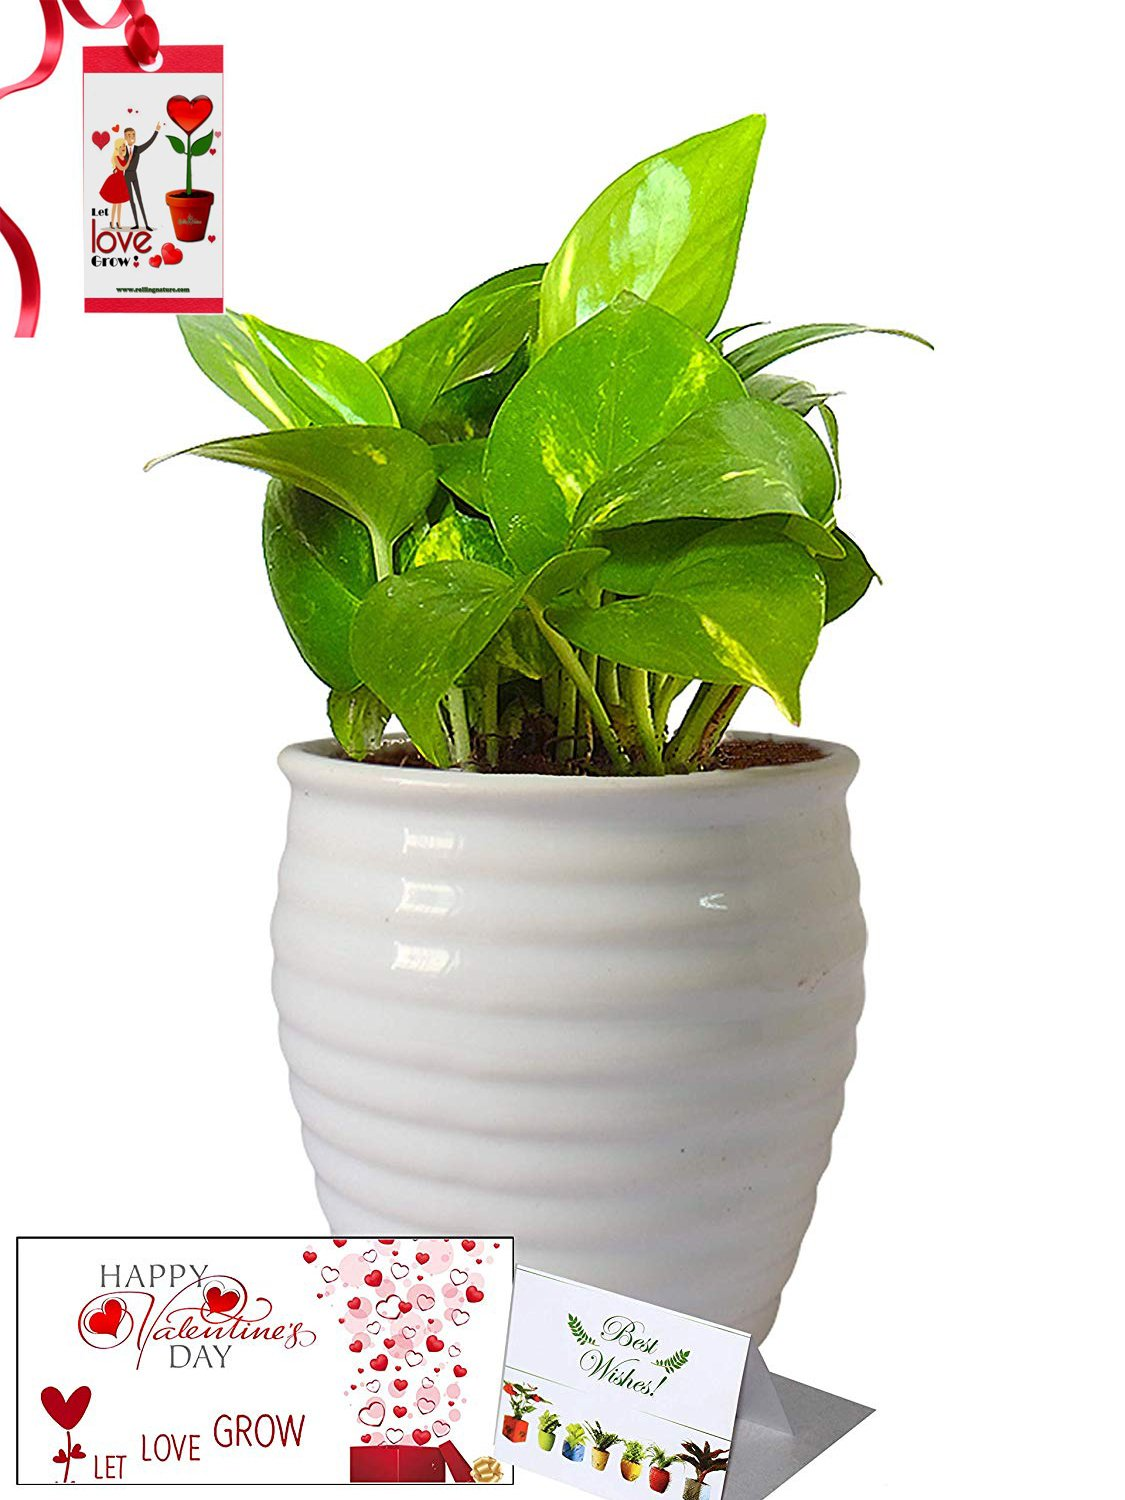 Valentine's Day Combo of Good Luck Air Purifying Money Plant in White Ceramic Pot